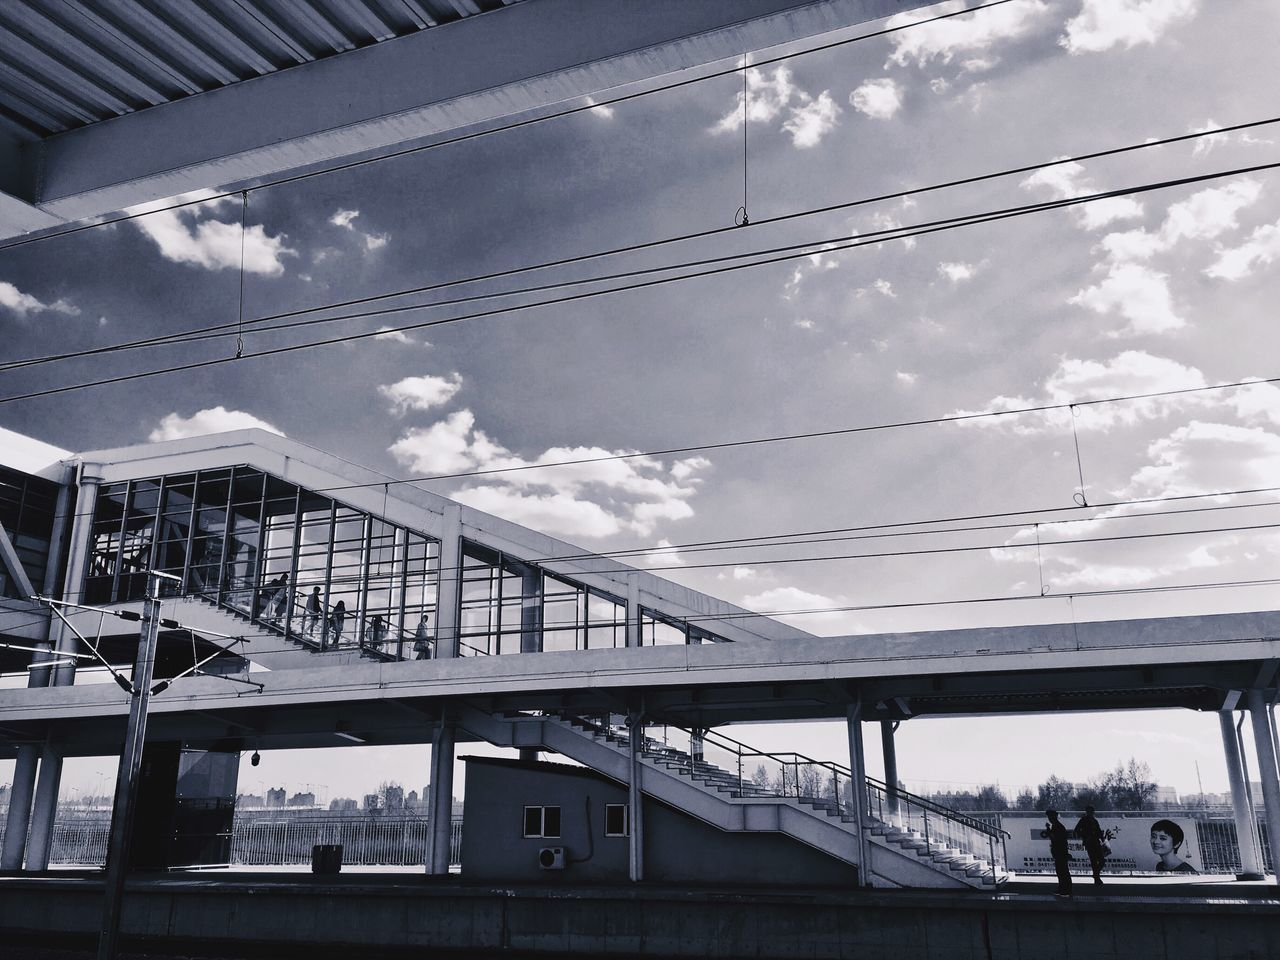 sky, cloud - sky, architecture, connection, built structure, low angle view, day, bridge - man made structure, transportation, cable, outdoors, men, building exterior, real people, city, people